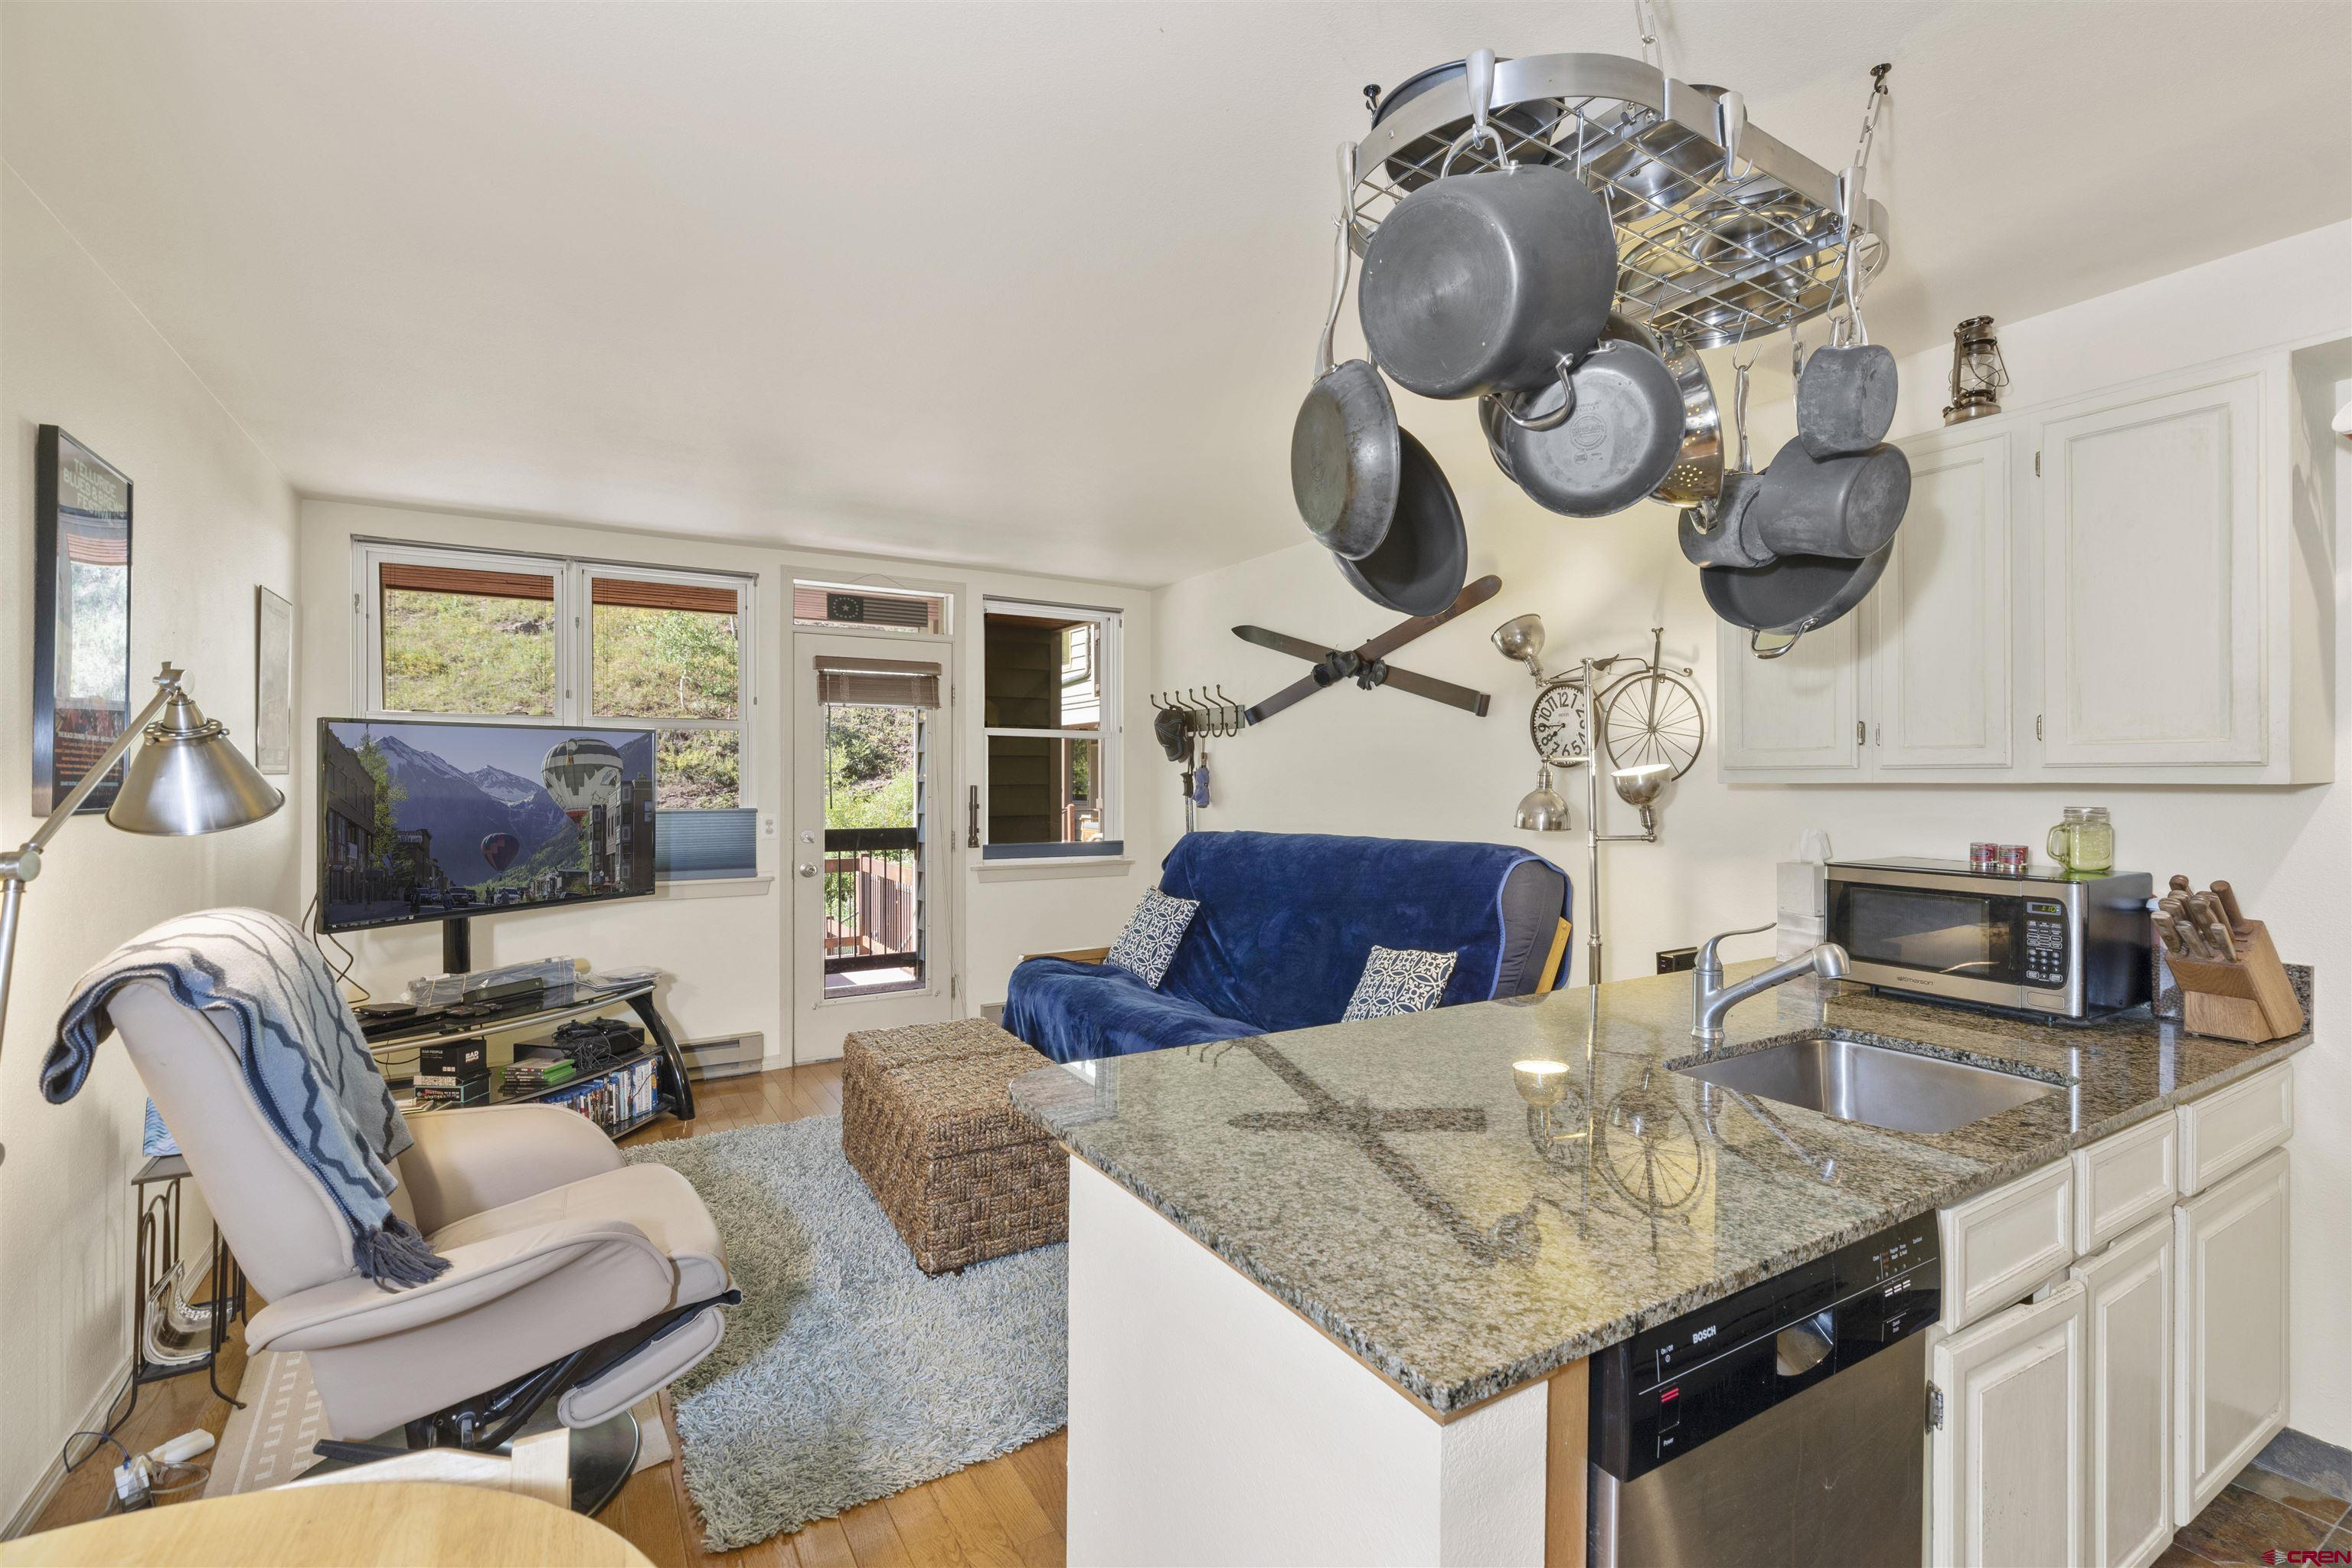 Sitting just steps from Lift 7 of the Telluride Ski Resort and the San Miguel River Trail, this ski in/ski out one bedroom/one bath Etta Place condominium is an exciting opportunity to call the town of Telluride home., whether for one week or a lifetime. The unique layout does not share any walls with a neighbor. The upscale finishes feature wood floors, stainless appliances, granite countertops and so much more. Parking is offered below the unit. The local transportation system stops in front of the complex and can take you to downtown Telluride, The Gondola to Mountain Village and Telluride Town Park. A strong rental income is possible with this Rocky Mountain Ski property.